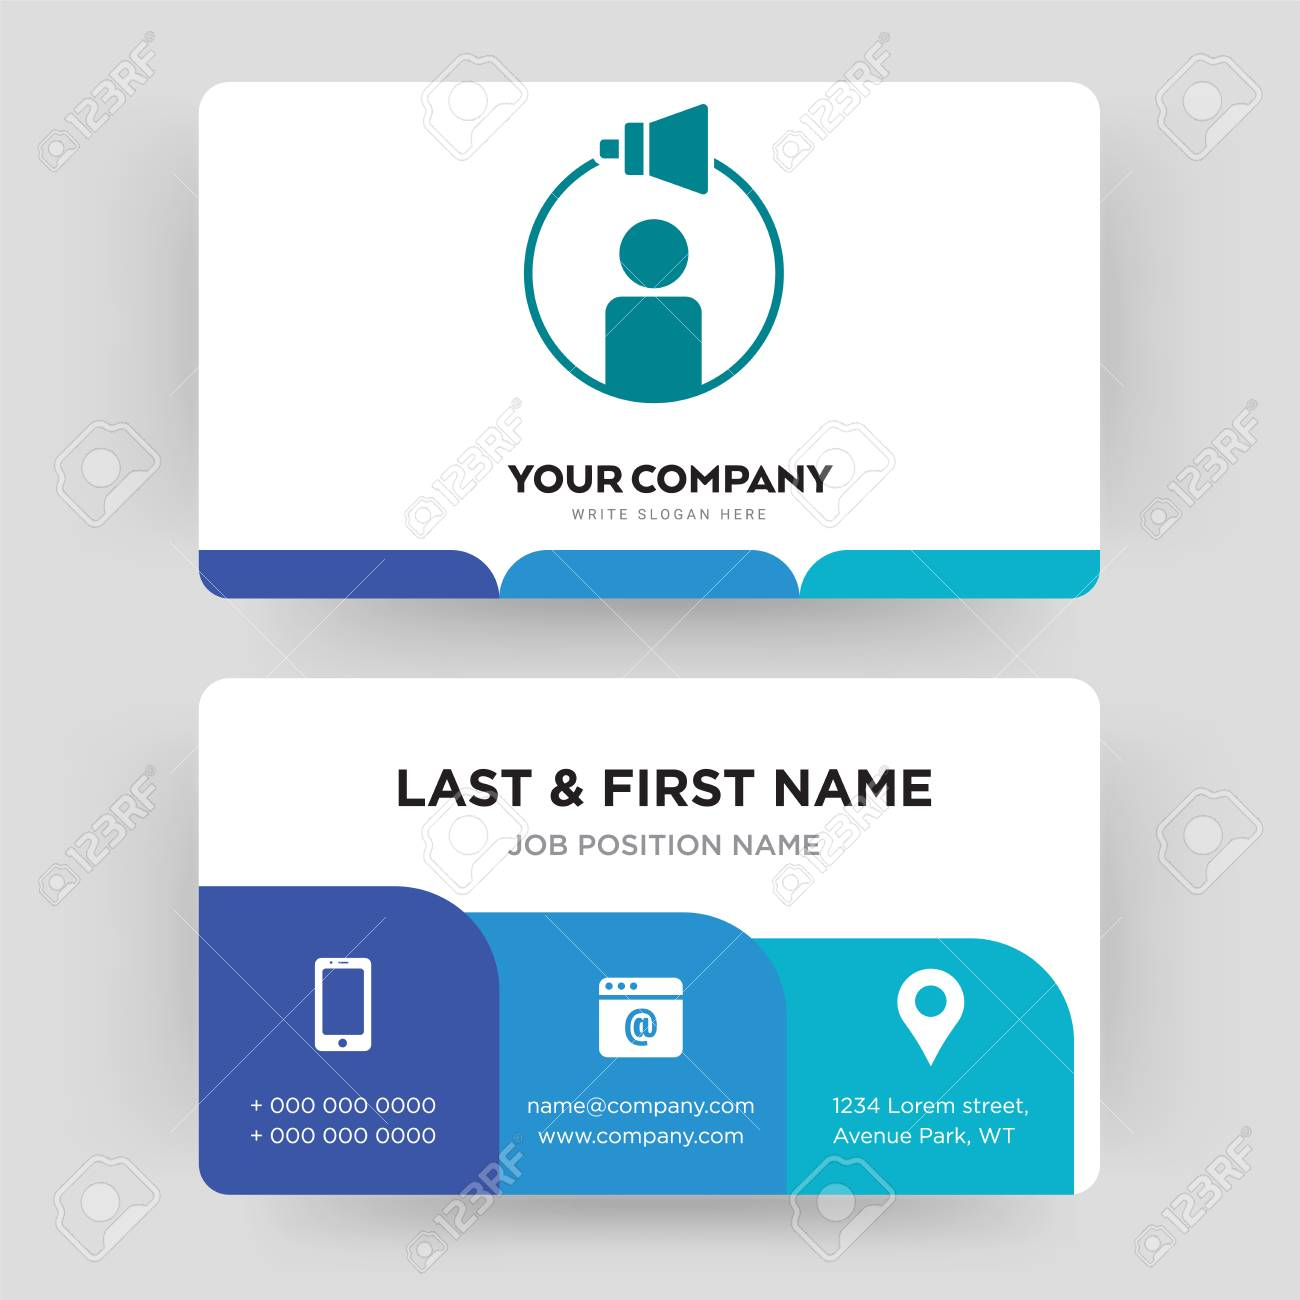 Campaign Management Business Card Design Template Visiting